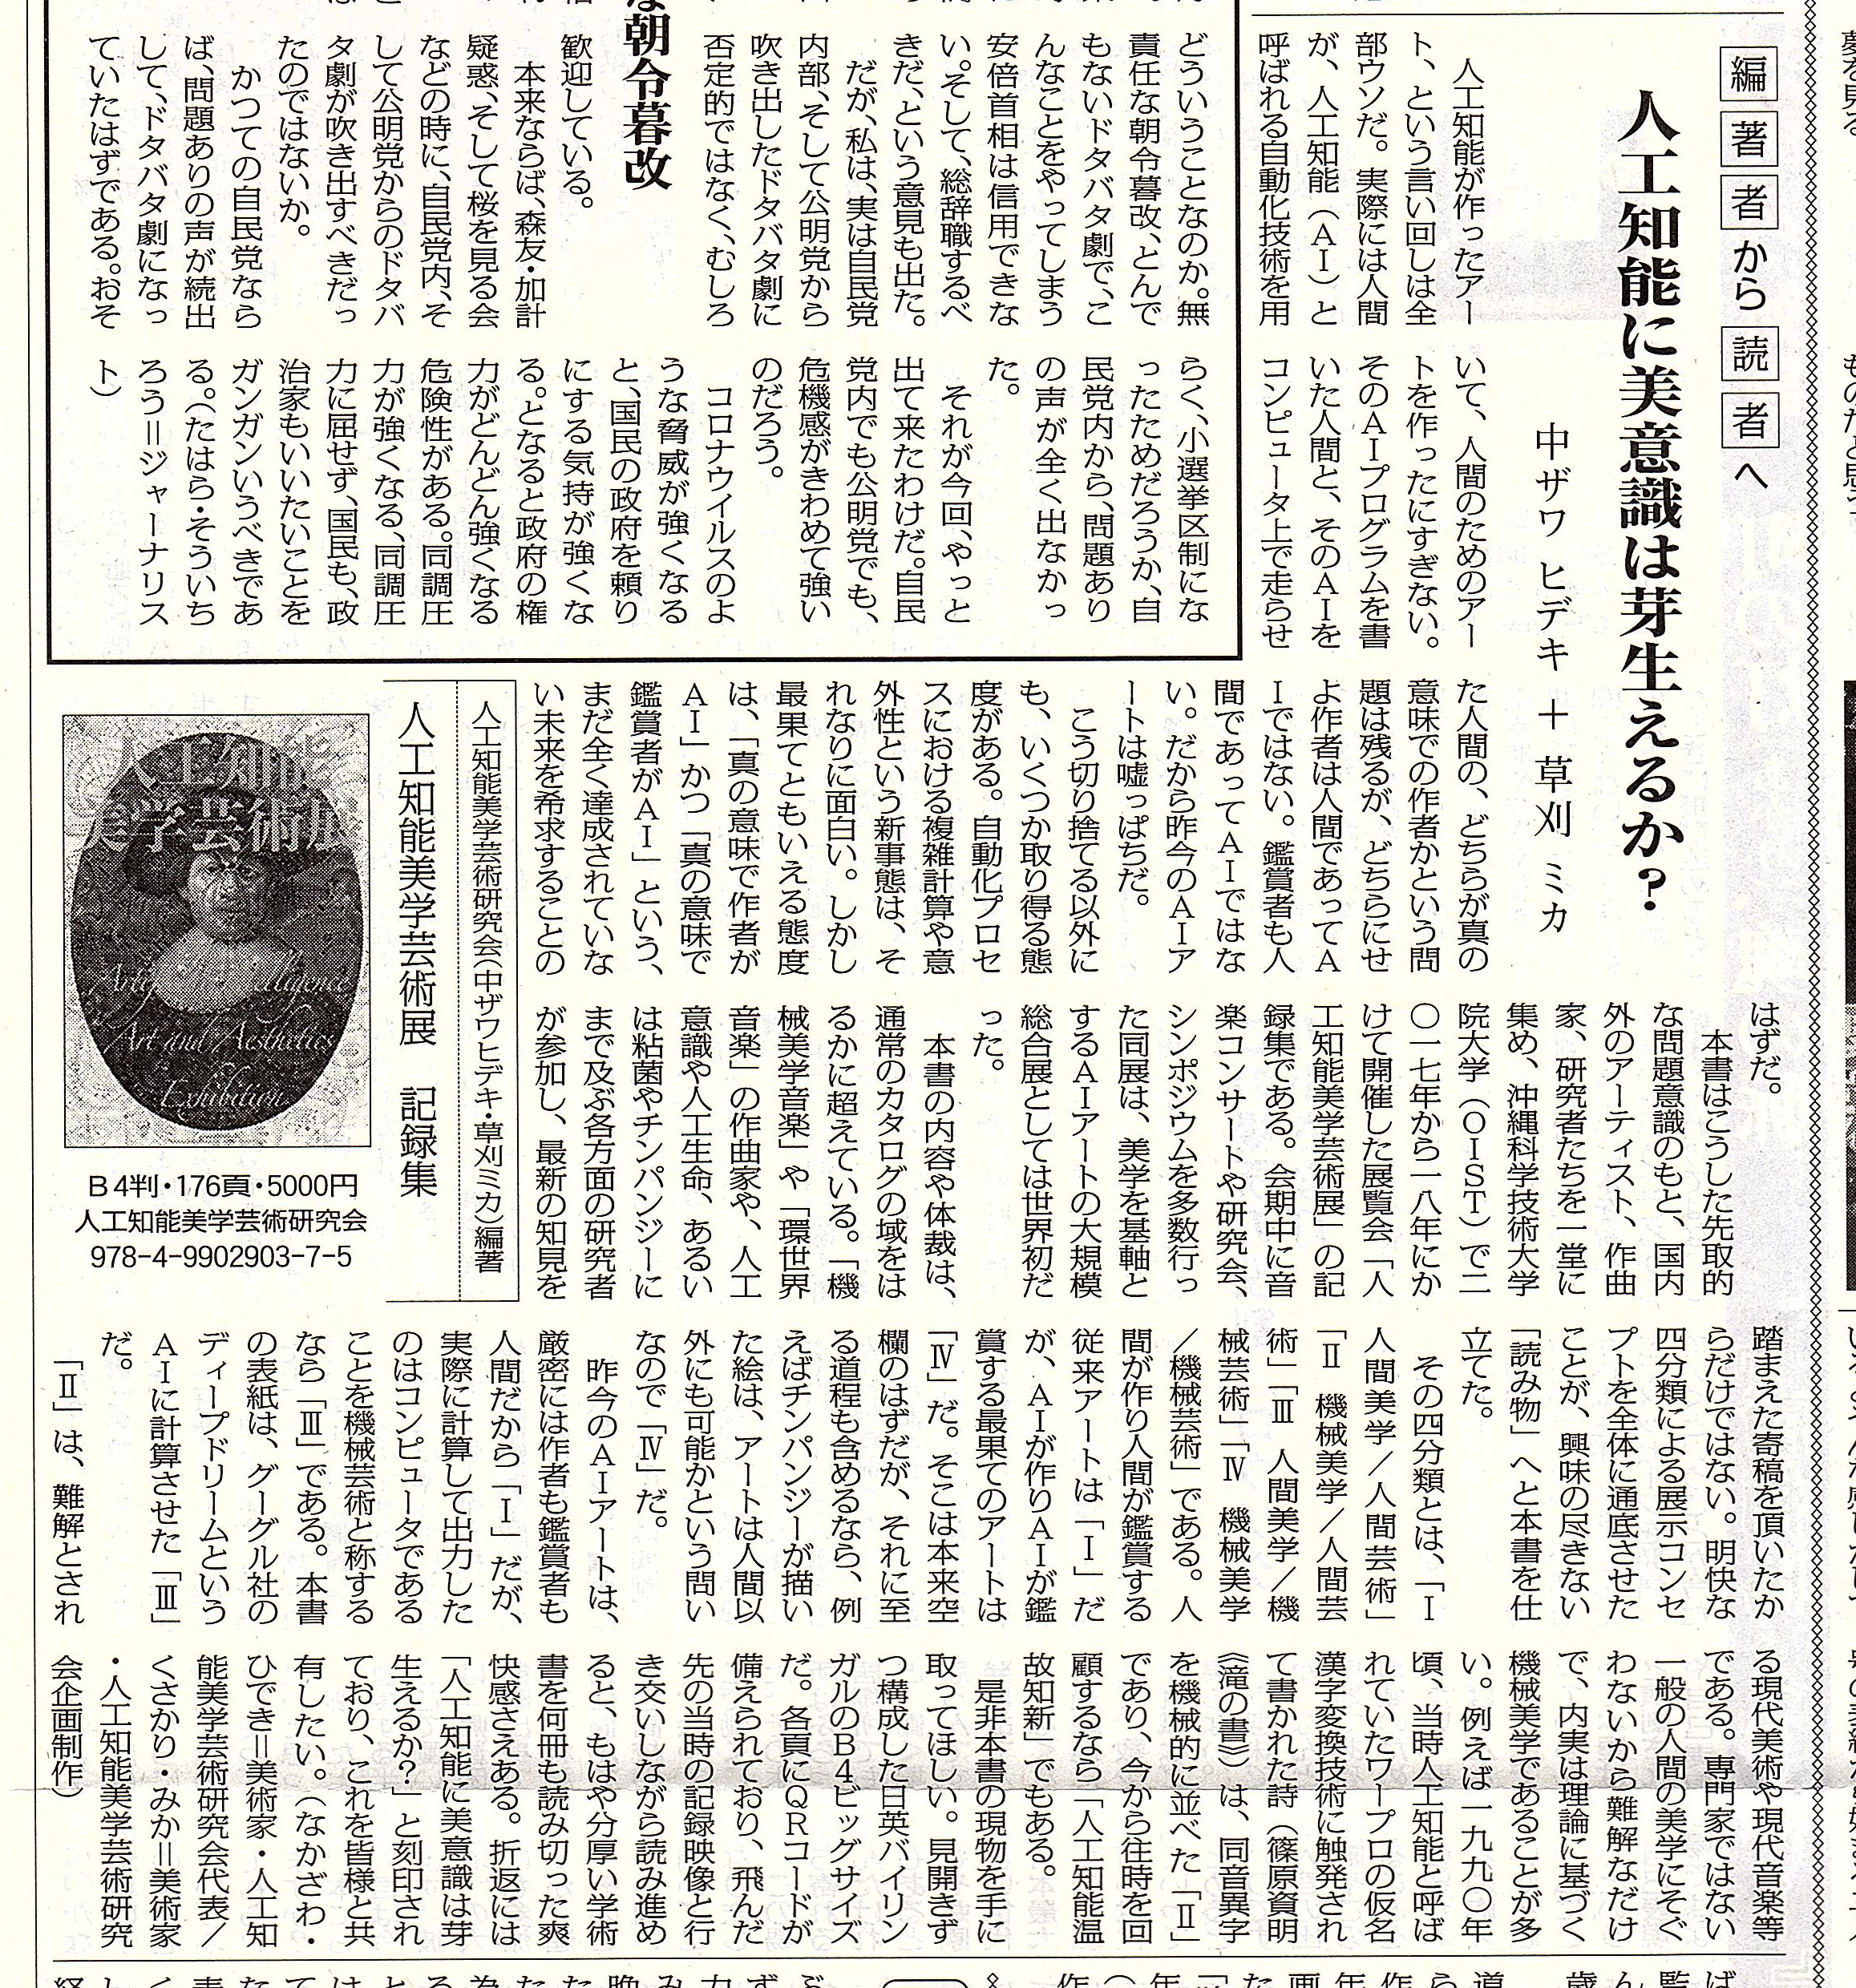 """Will AI Develop Its Own Sense of Aesthetics?"" From Author and Editor to Reader (Weekly Dokushojin)"